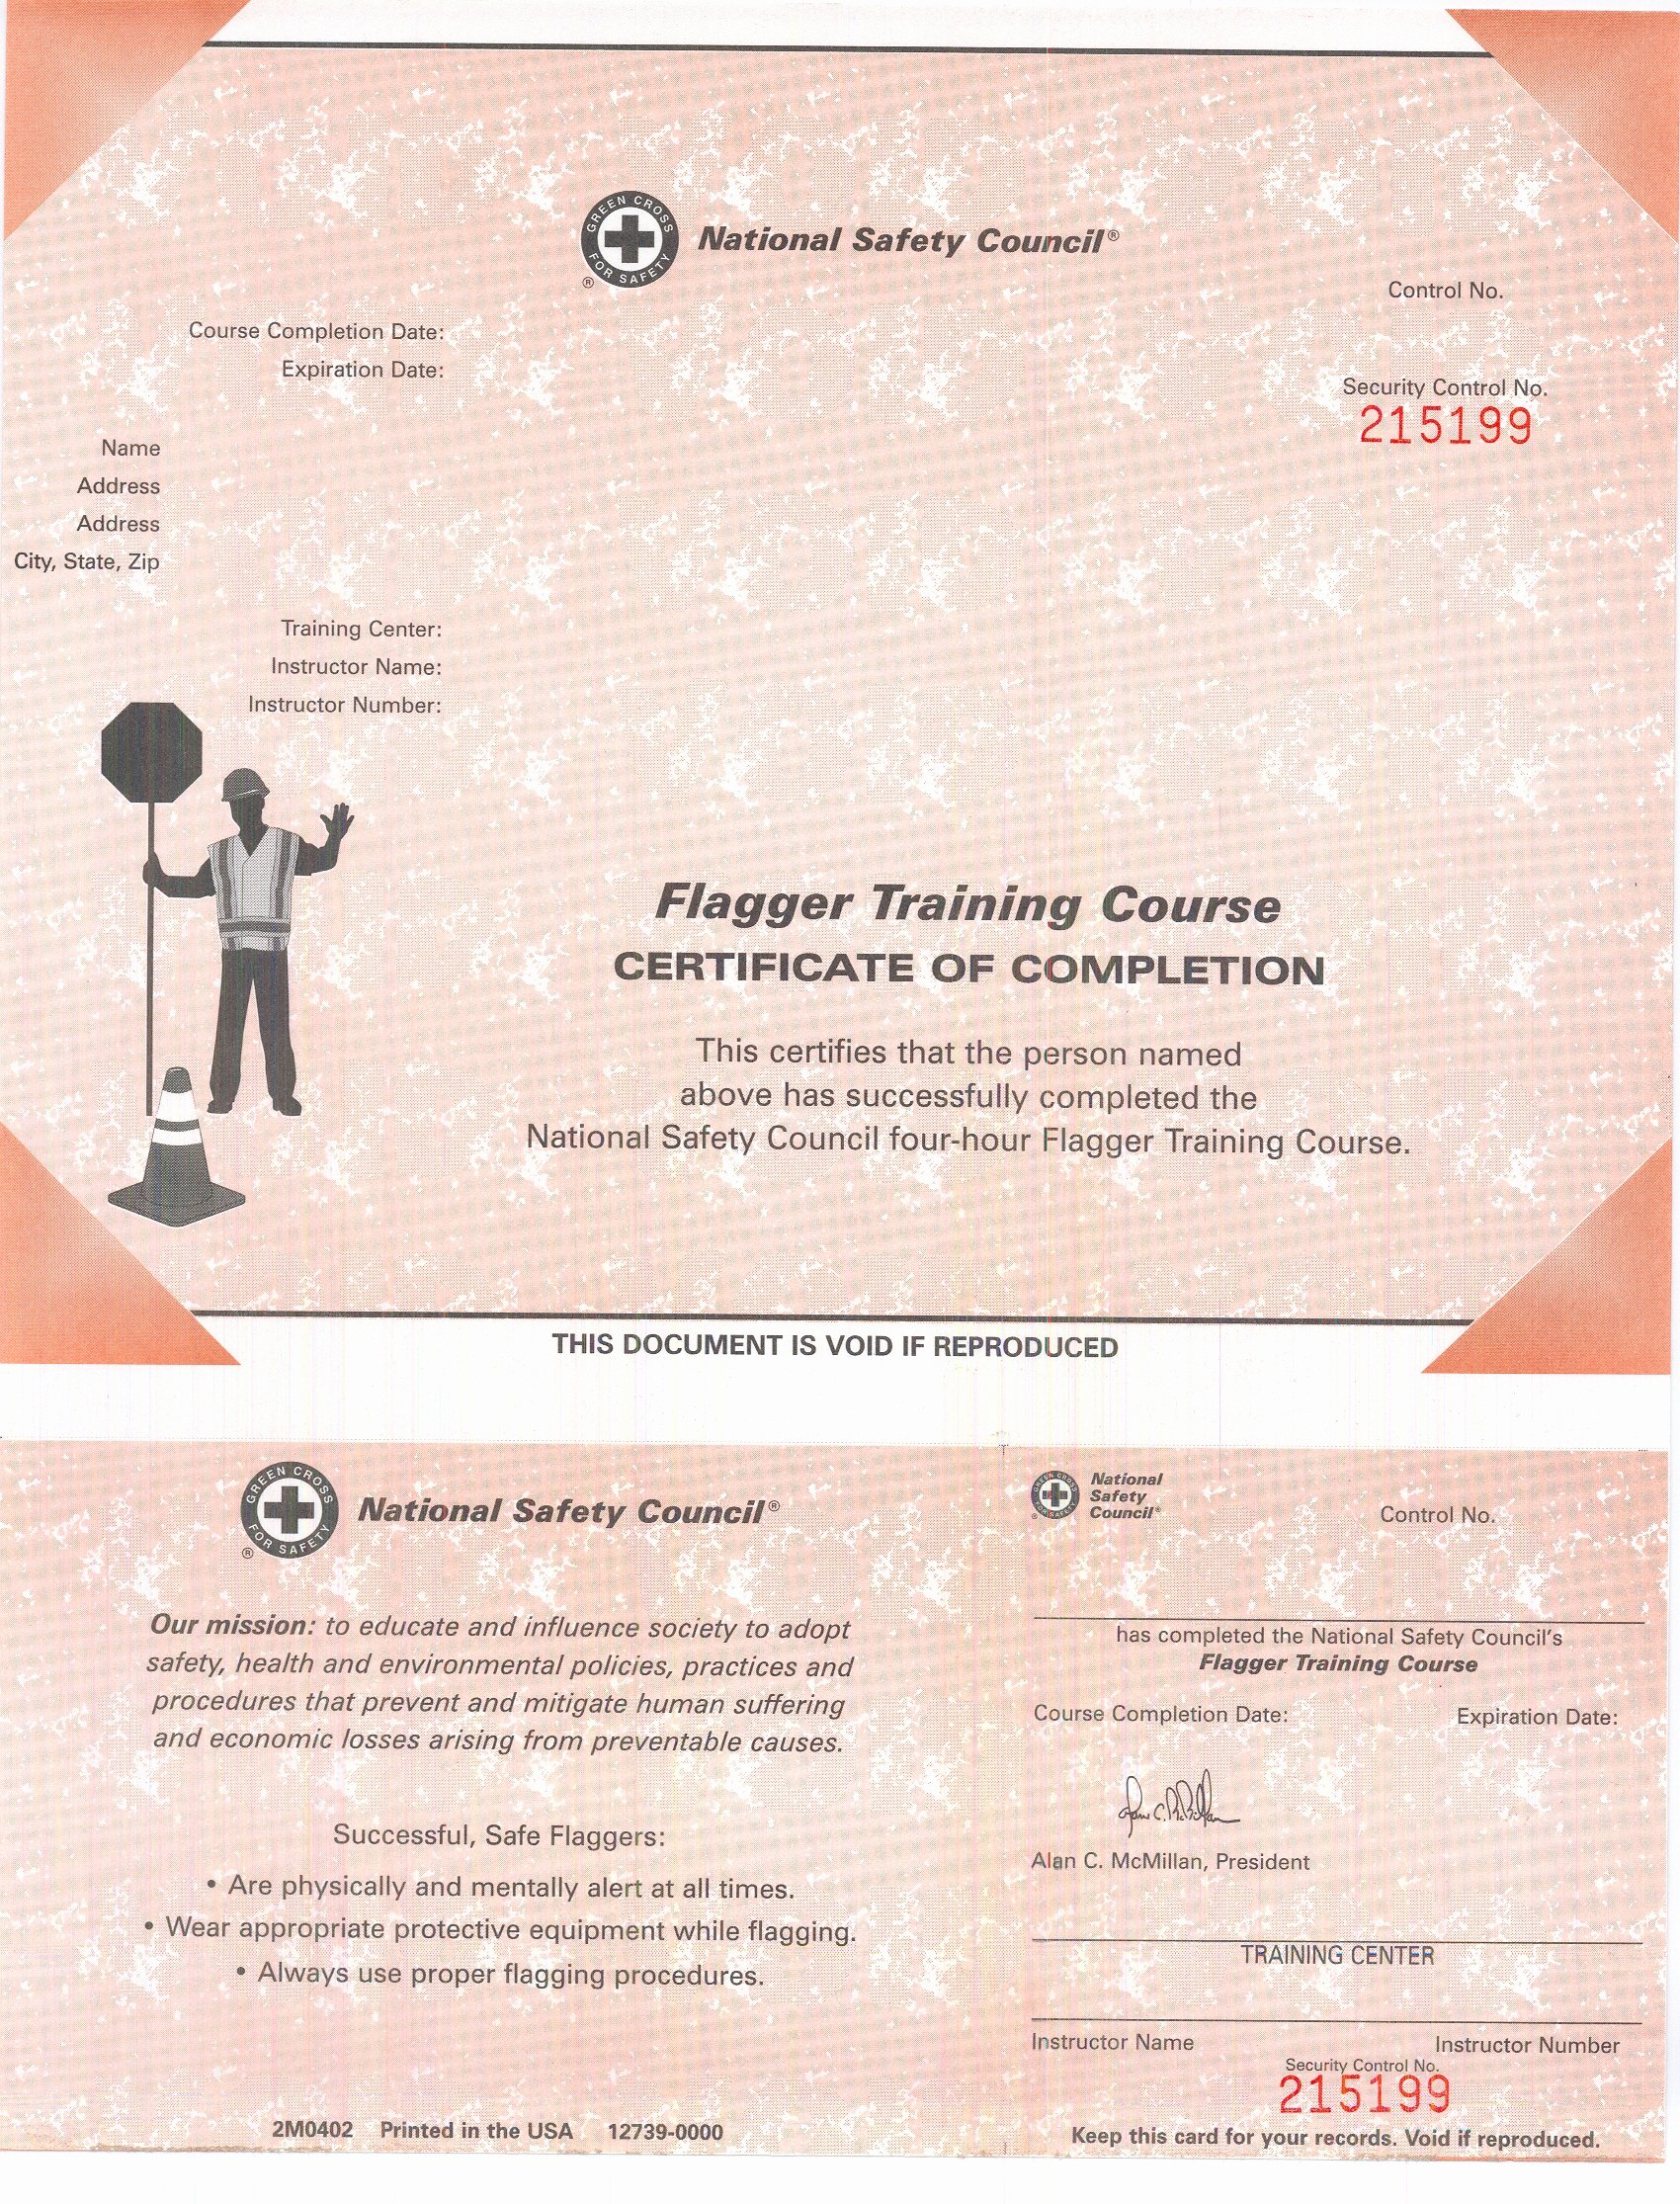 Safety Training Certificate Template Luxury Temp for A Manual Handling Certificate Templatetemp for A